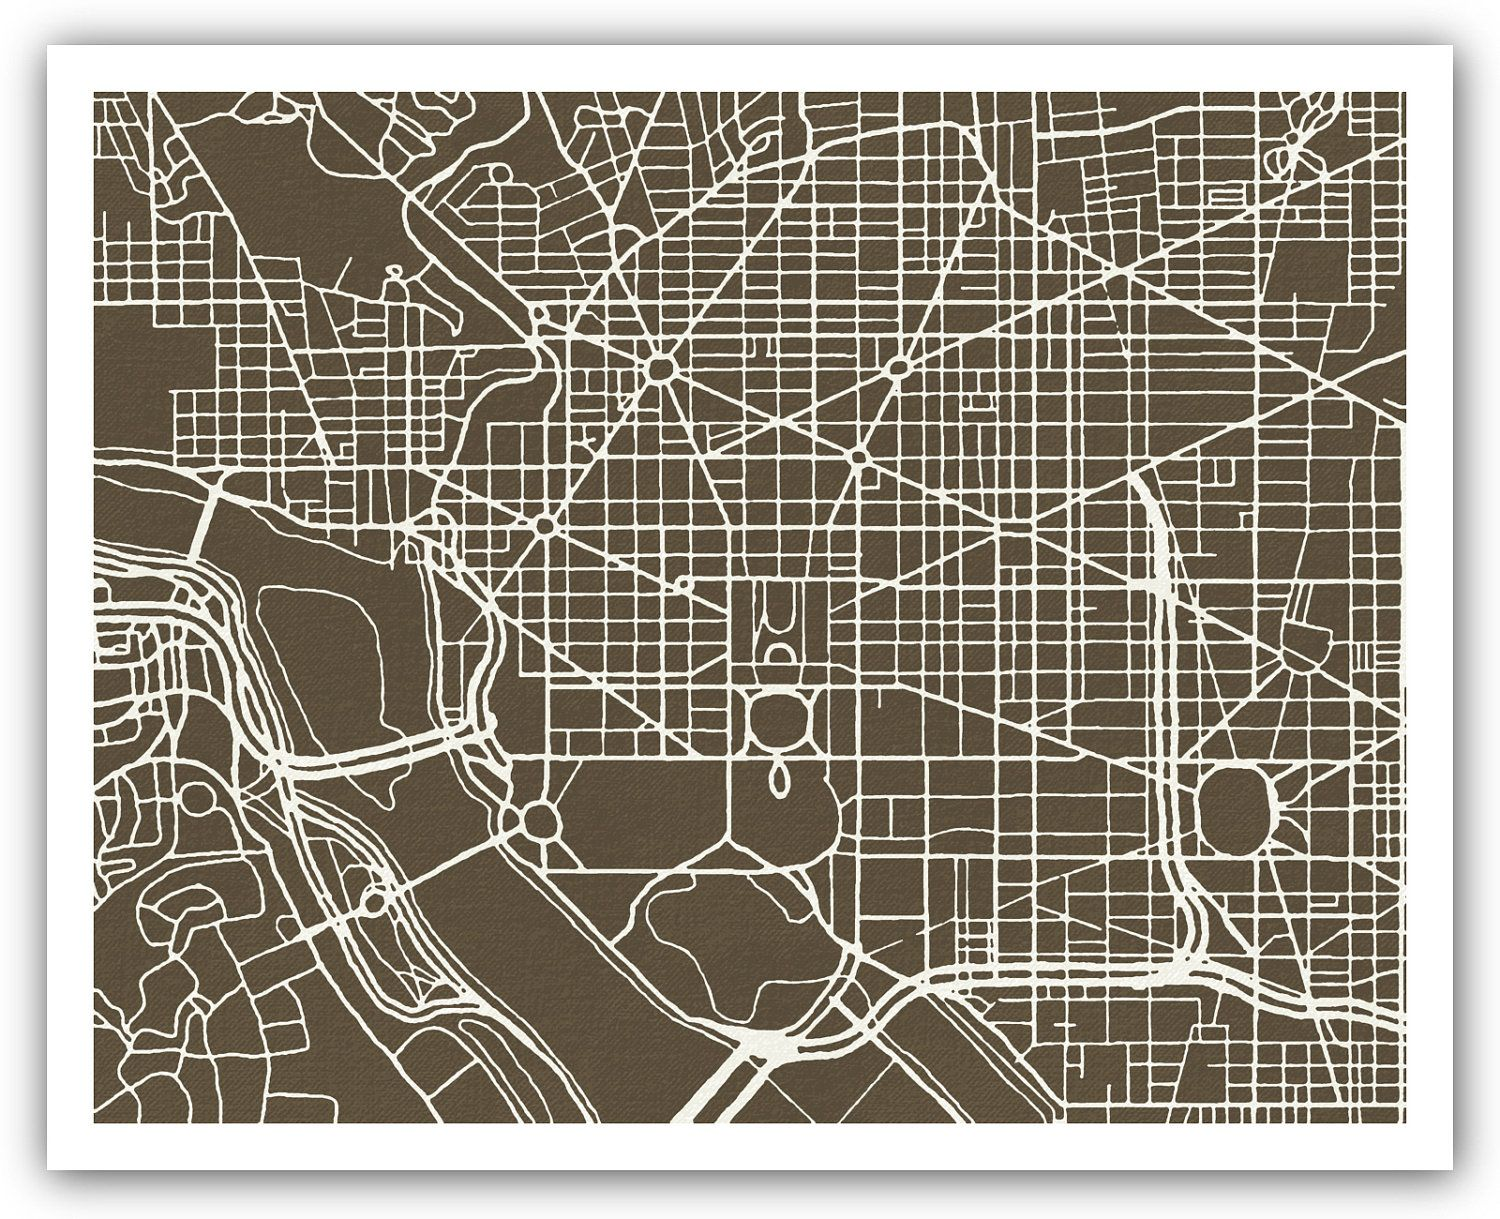 d c  grid map on etsy   maps   Pinterest   City maps d c  grid map on etsy